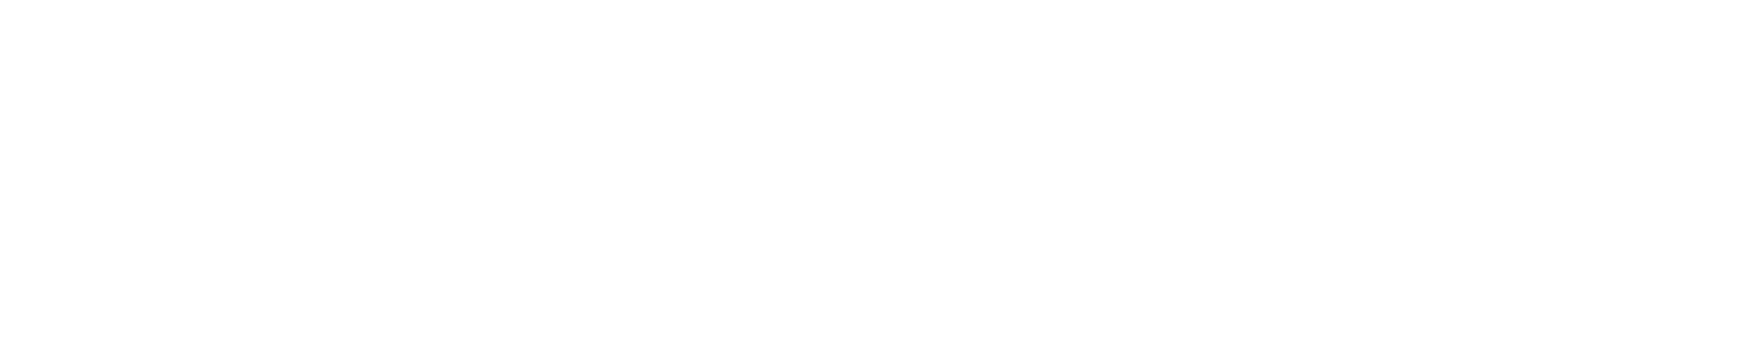 motivation-horiz-white-logo